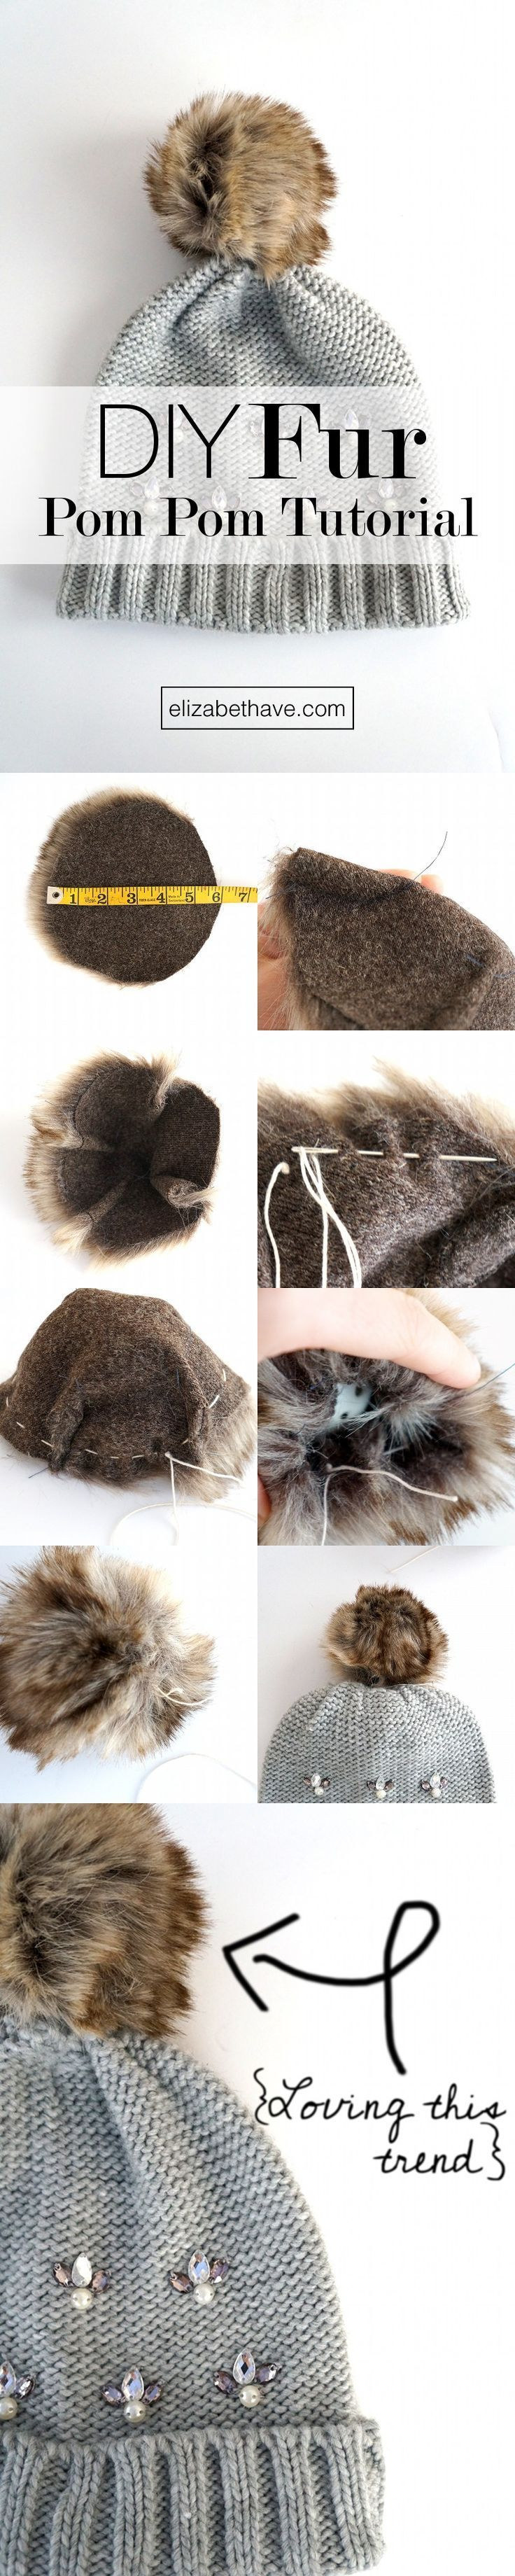 DIY Fur Pom Pom Tutorial | These pom poms are everywhere right now. If you have some scraps of faux fur laying around, this is the perfect sewing tutorial to use it up! Once you've made the fur pom pom, sew it on whatever you like!